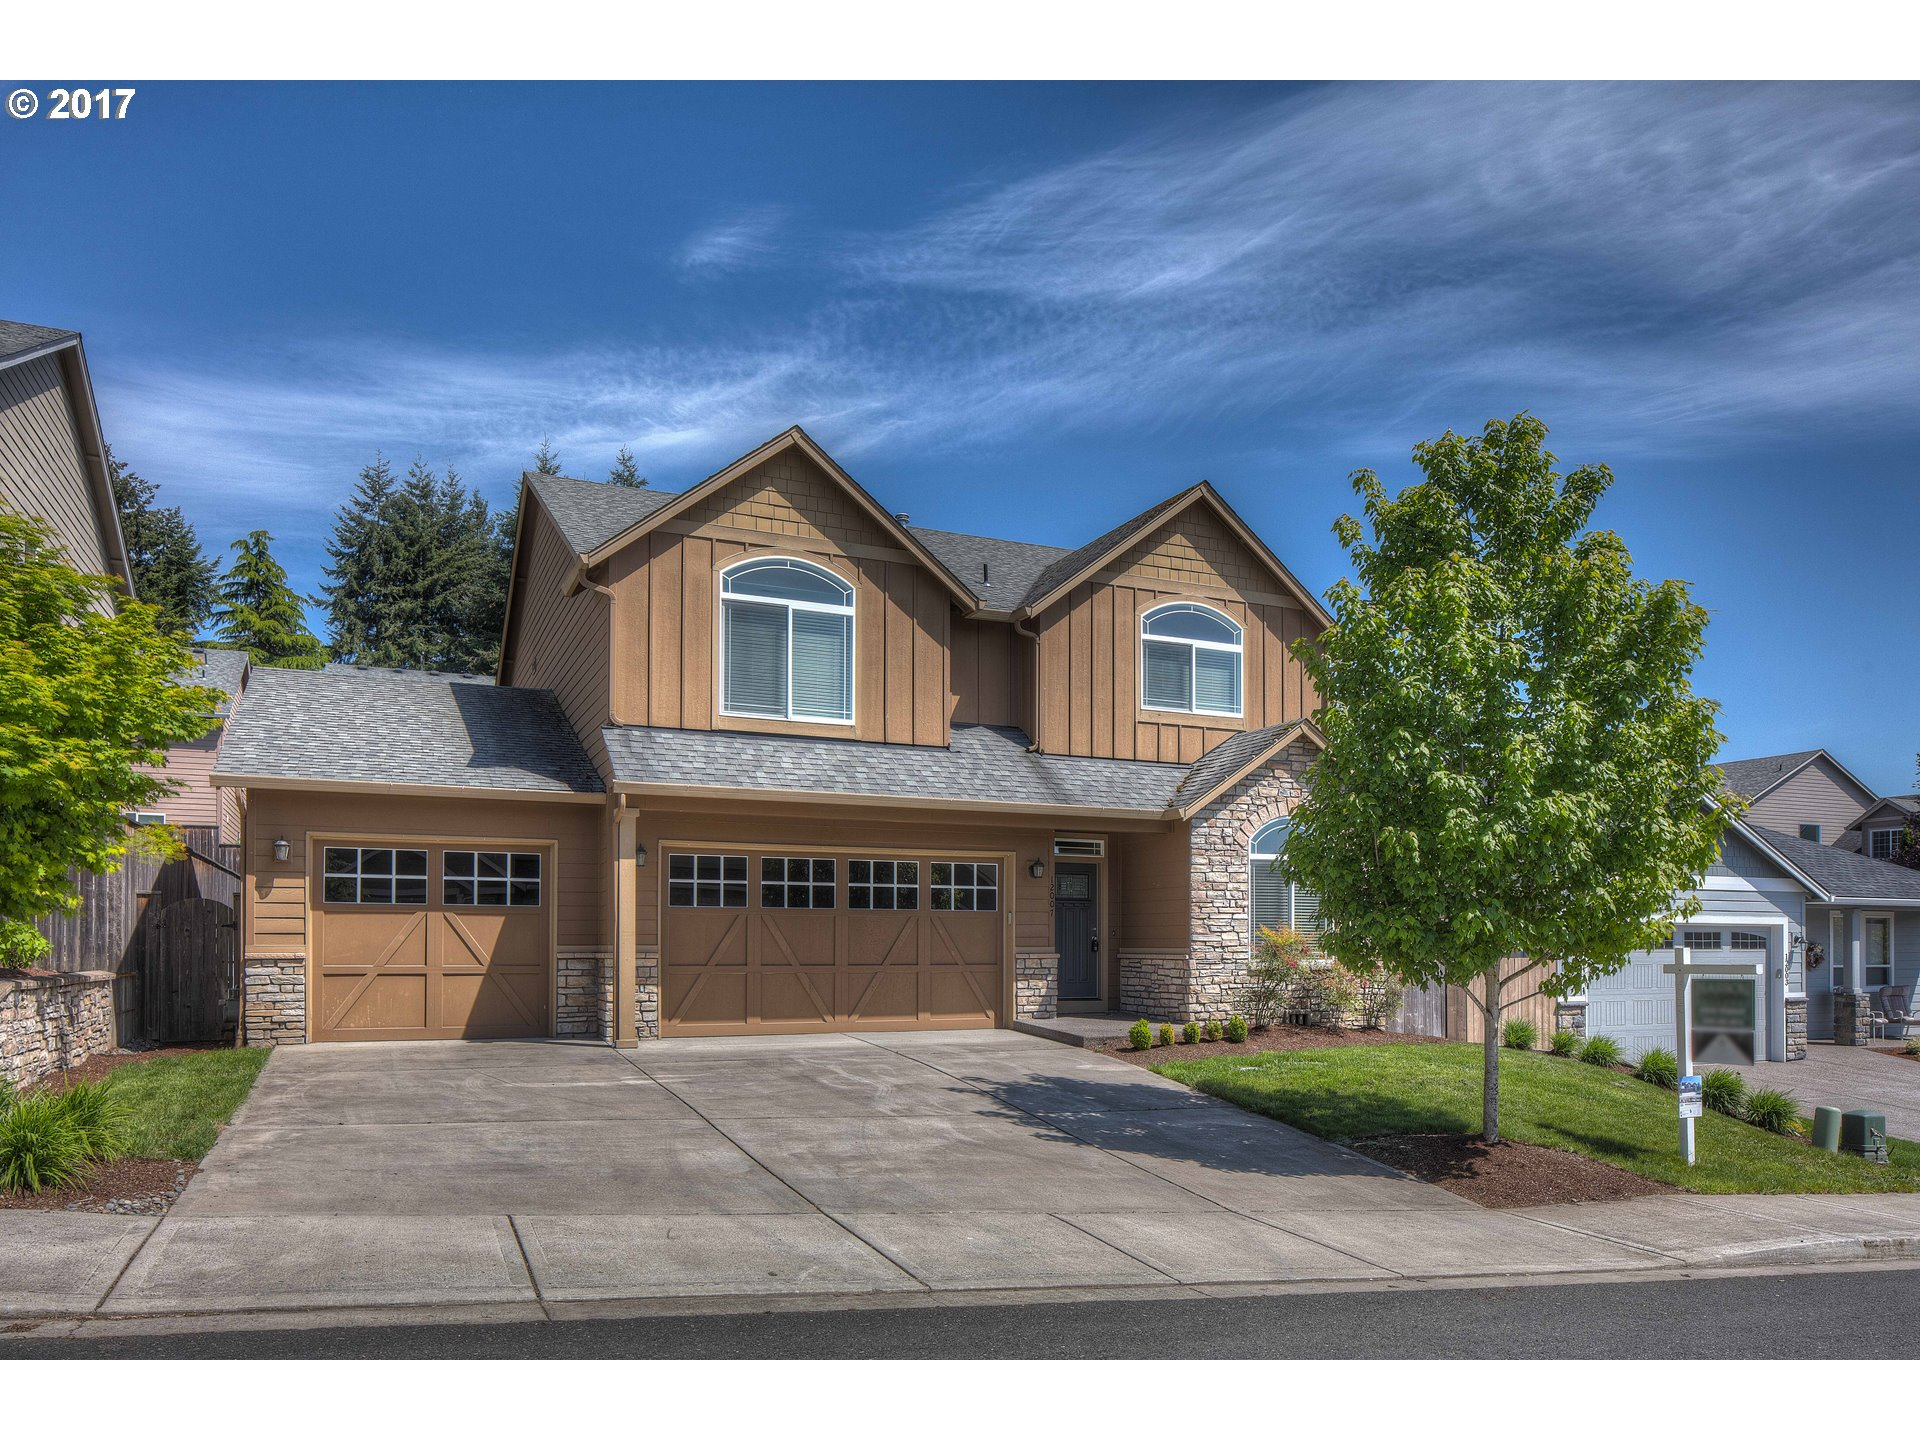 12007 NW 41ST AVE, Vancouver, WA 98685